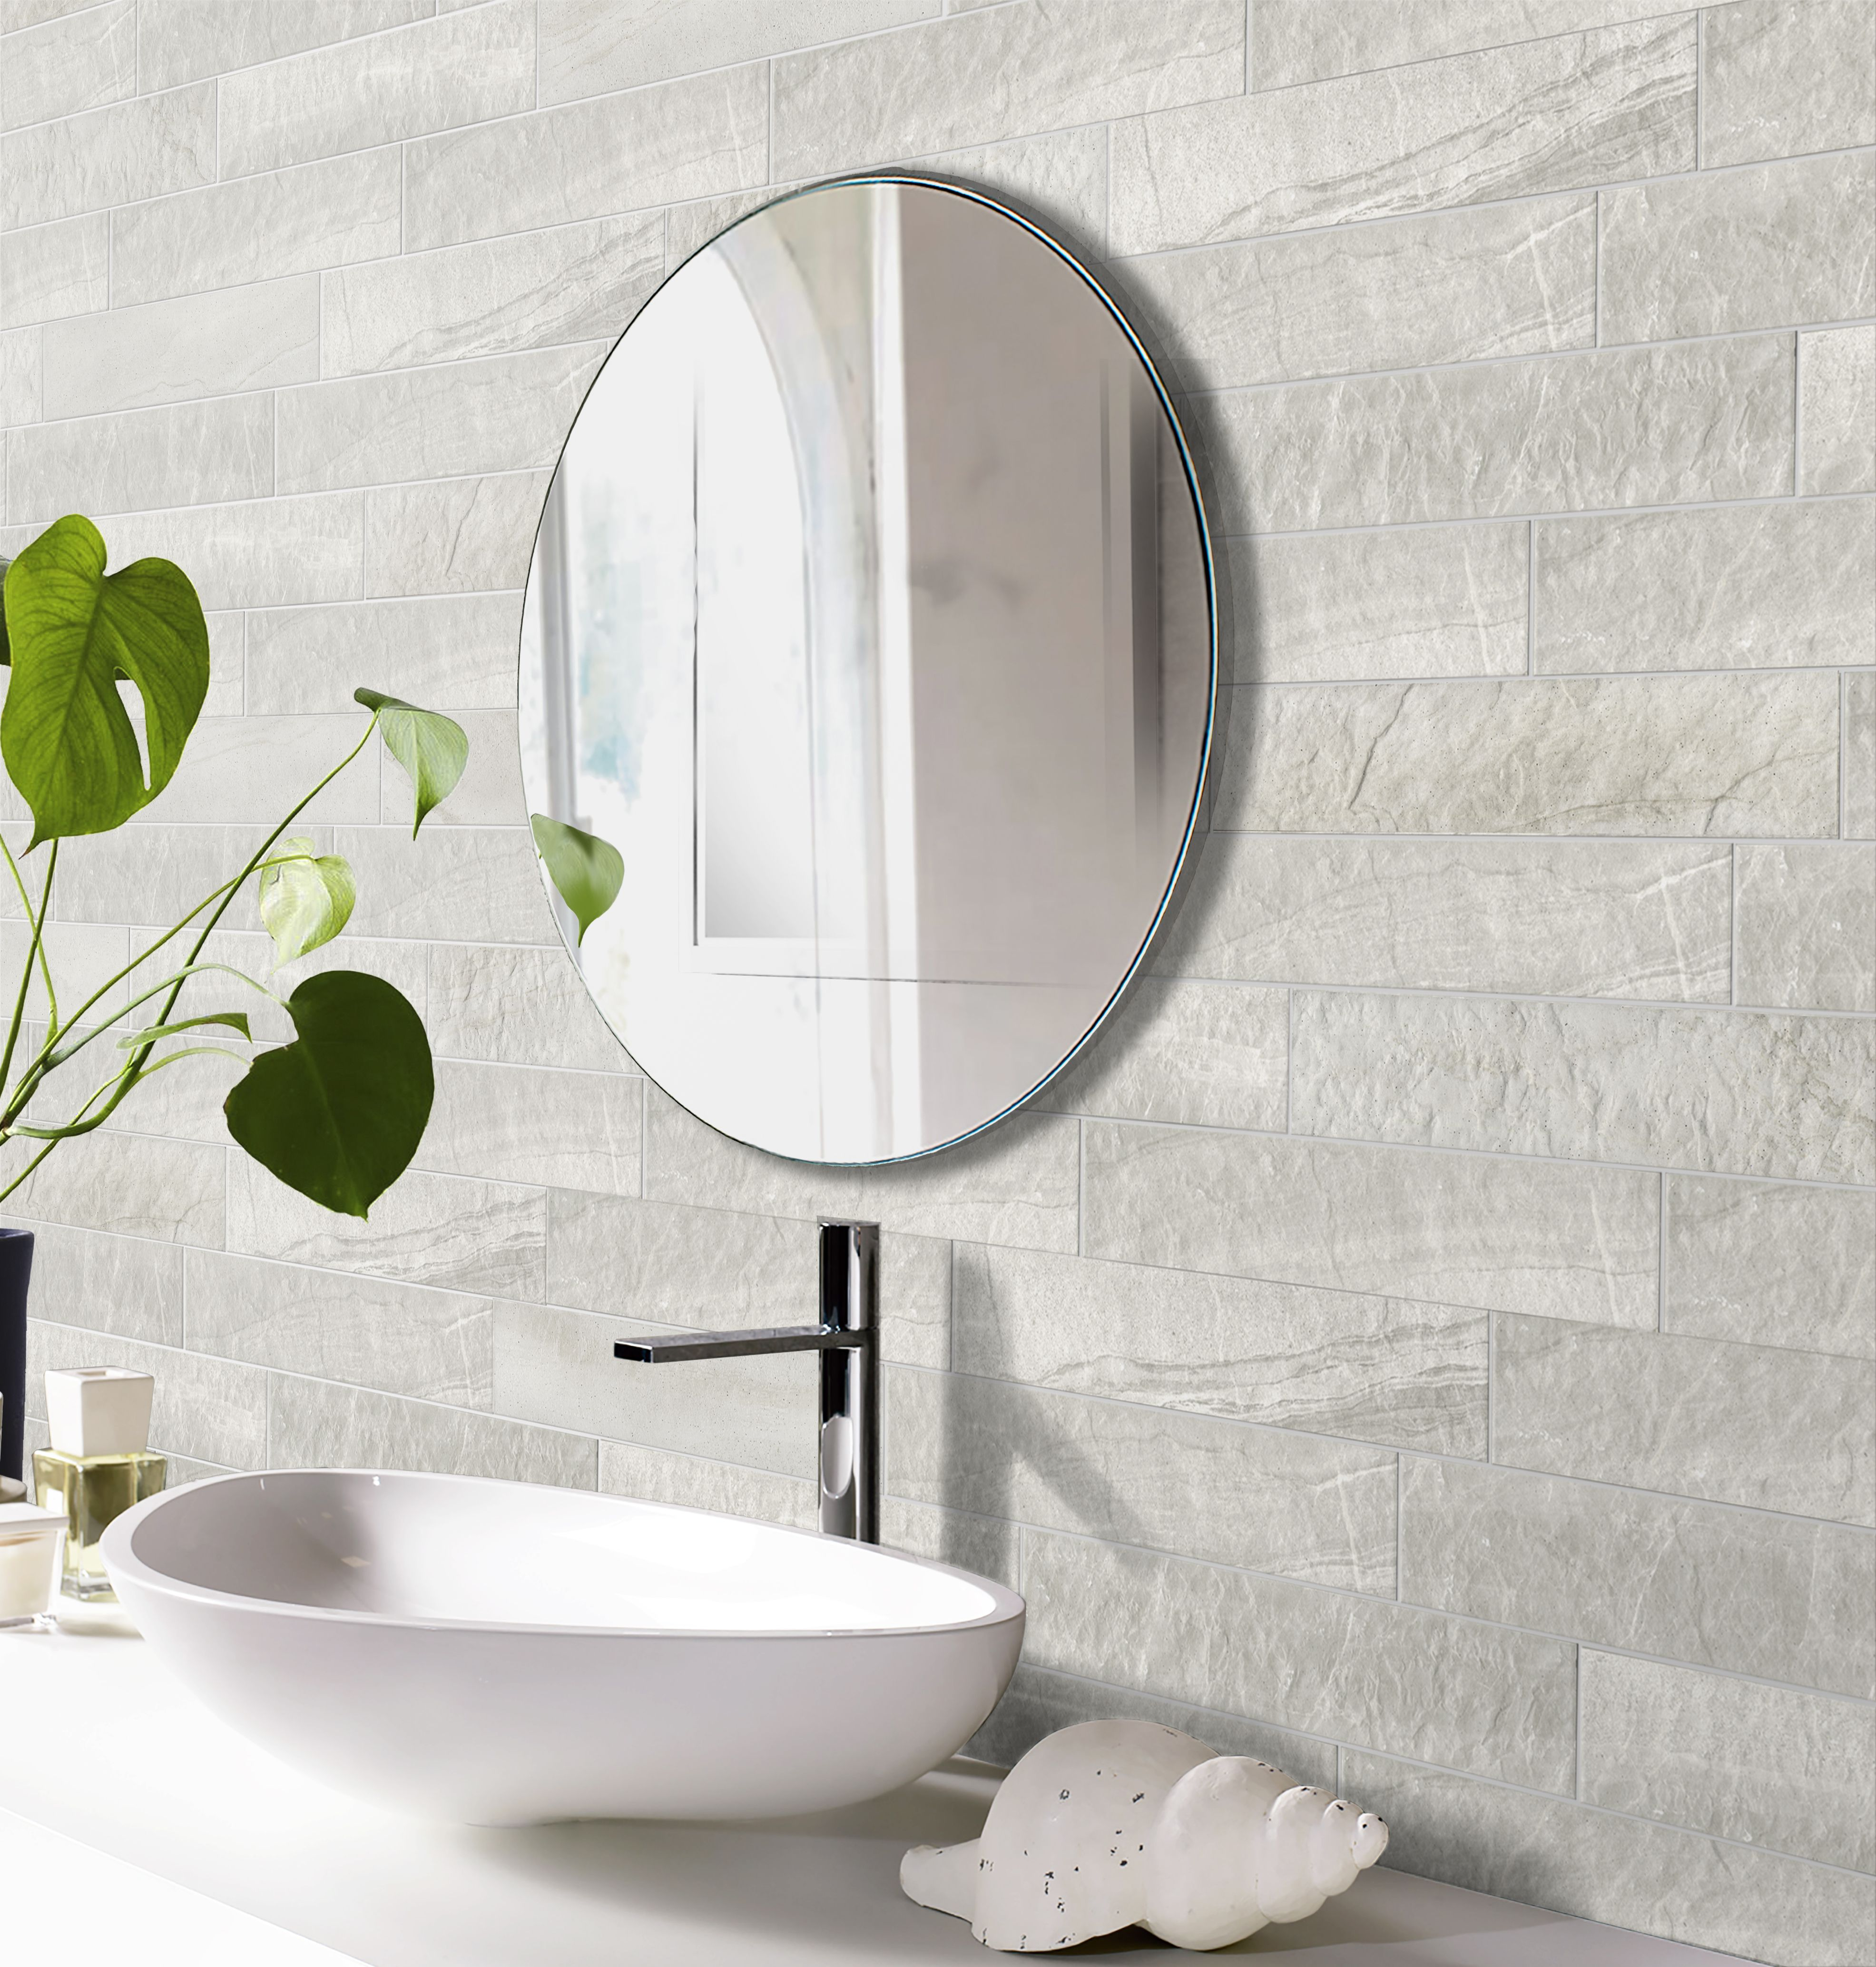 MINERALI   Tile Warehouse   One day of bathroom inspiration ...